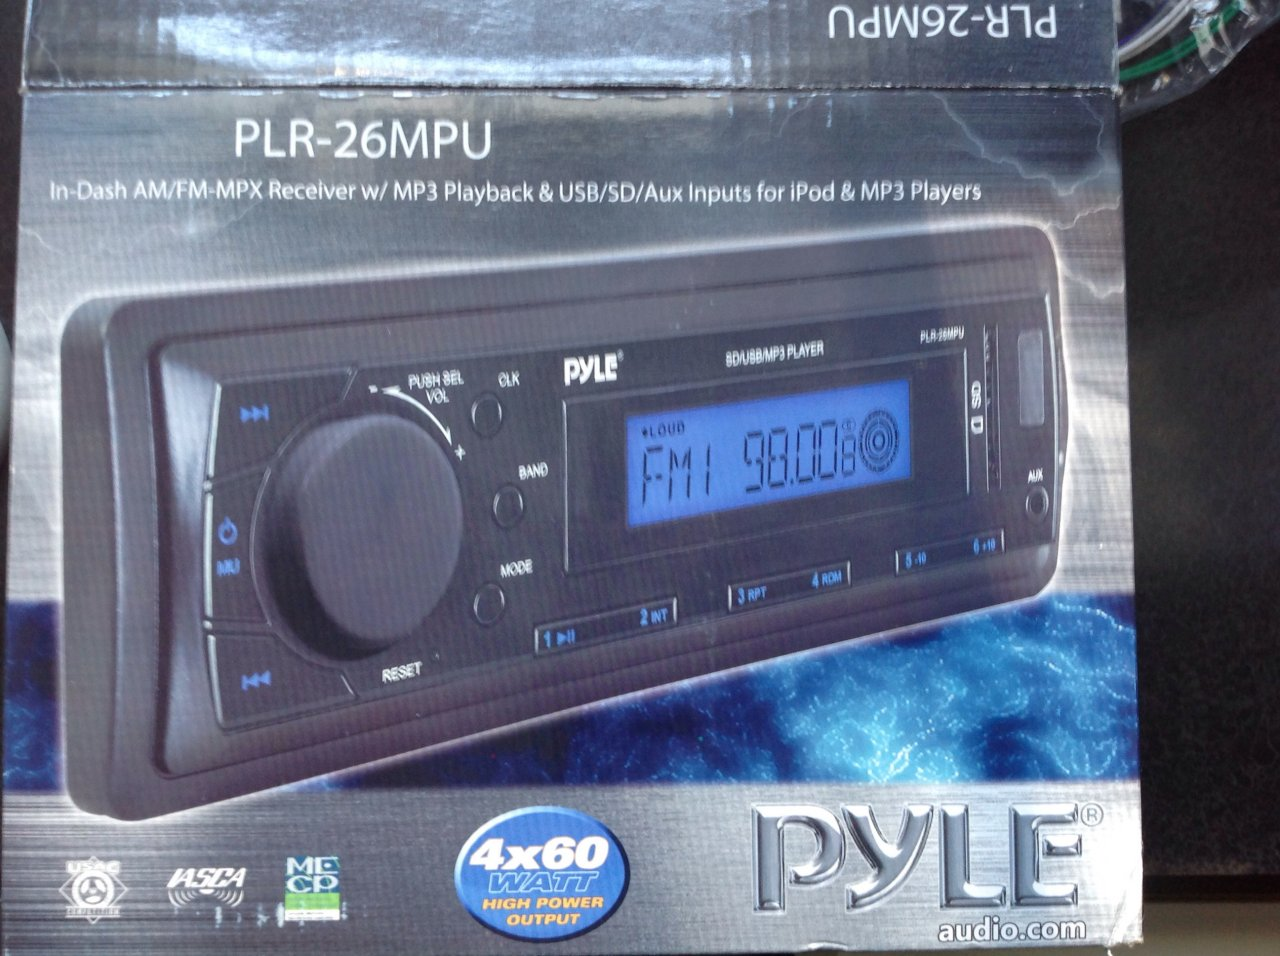 image.jpg I purchased an inexpensive aftermarket radio ...